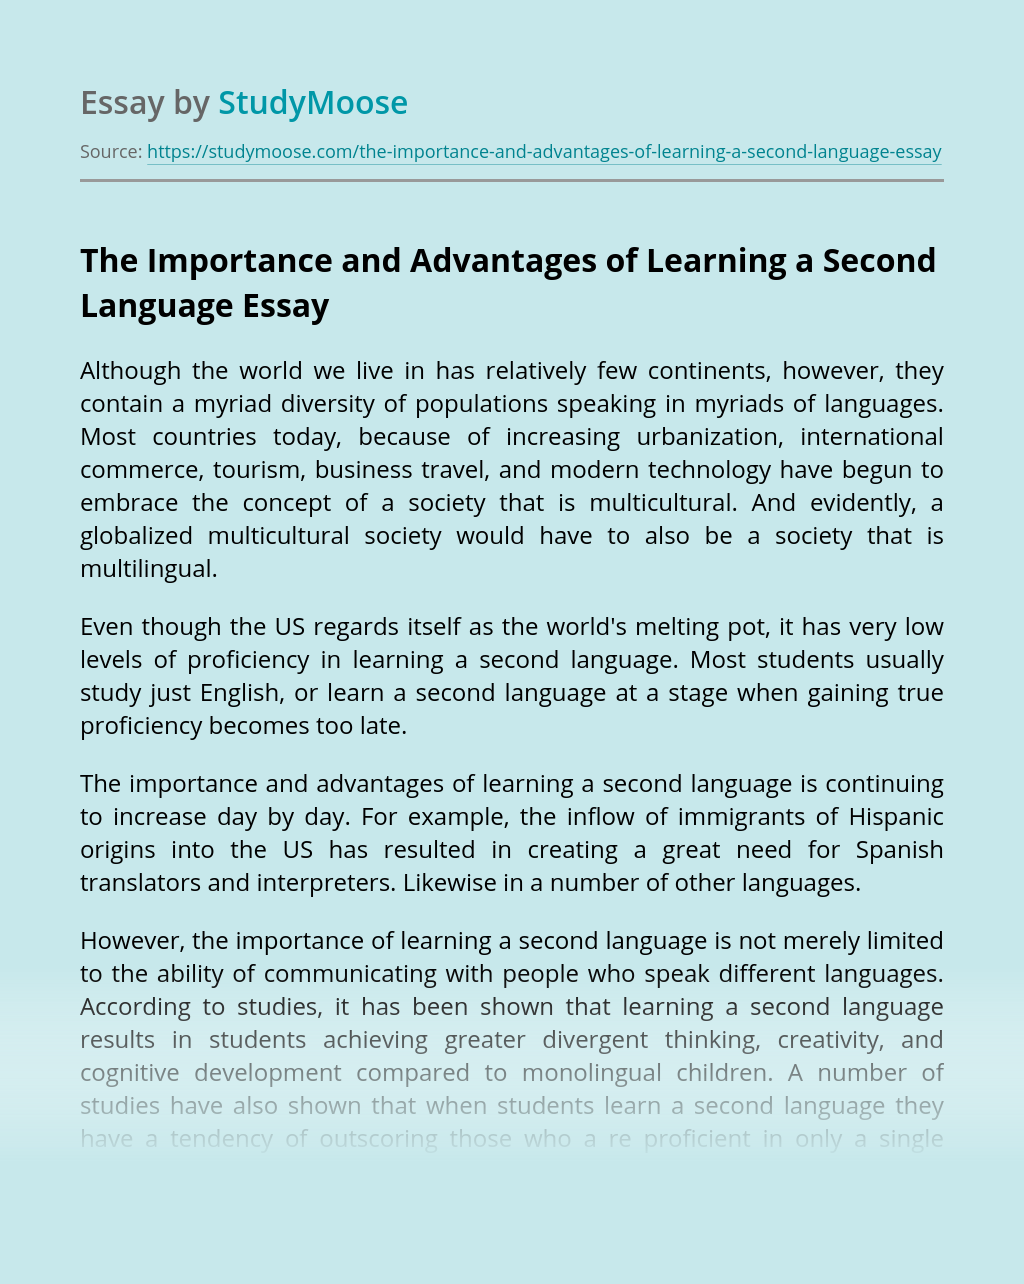 The Importance and Advantages of Learning a Second Language